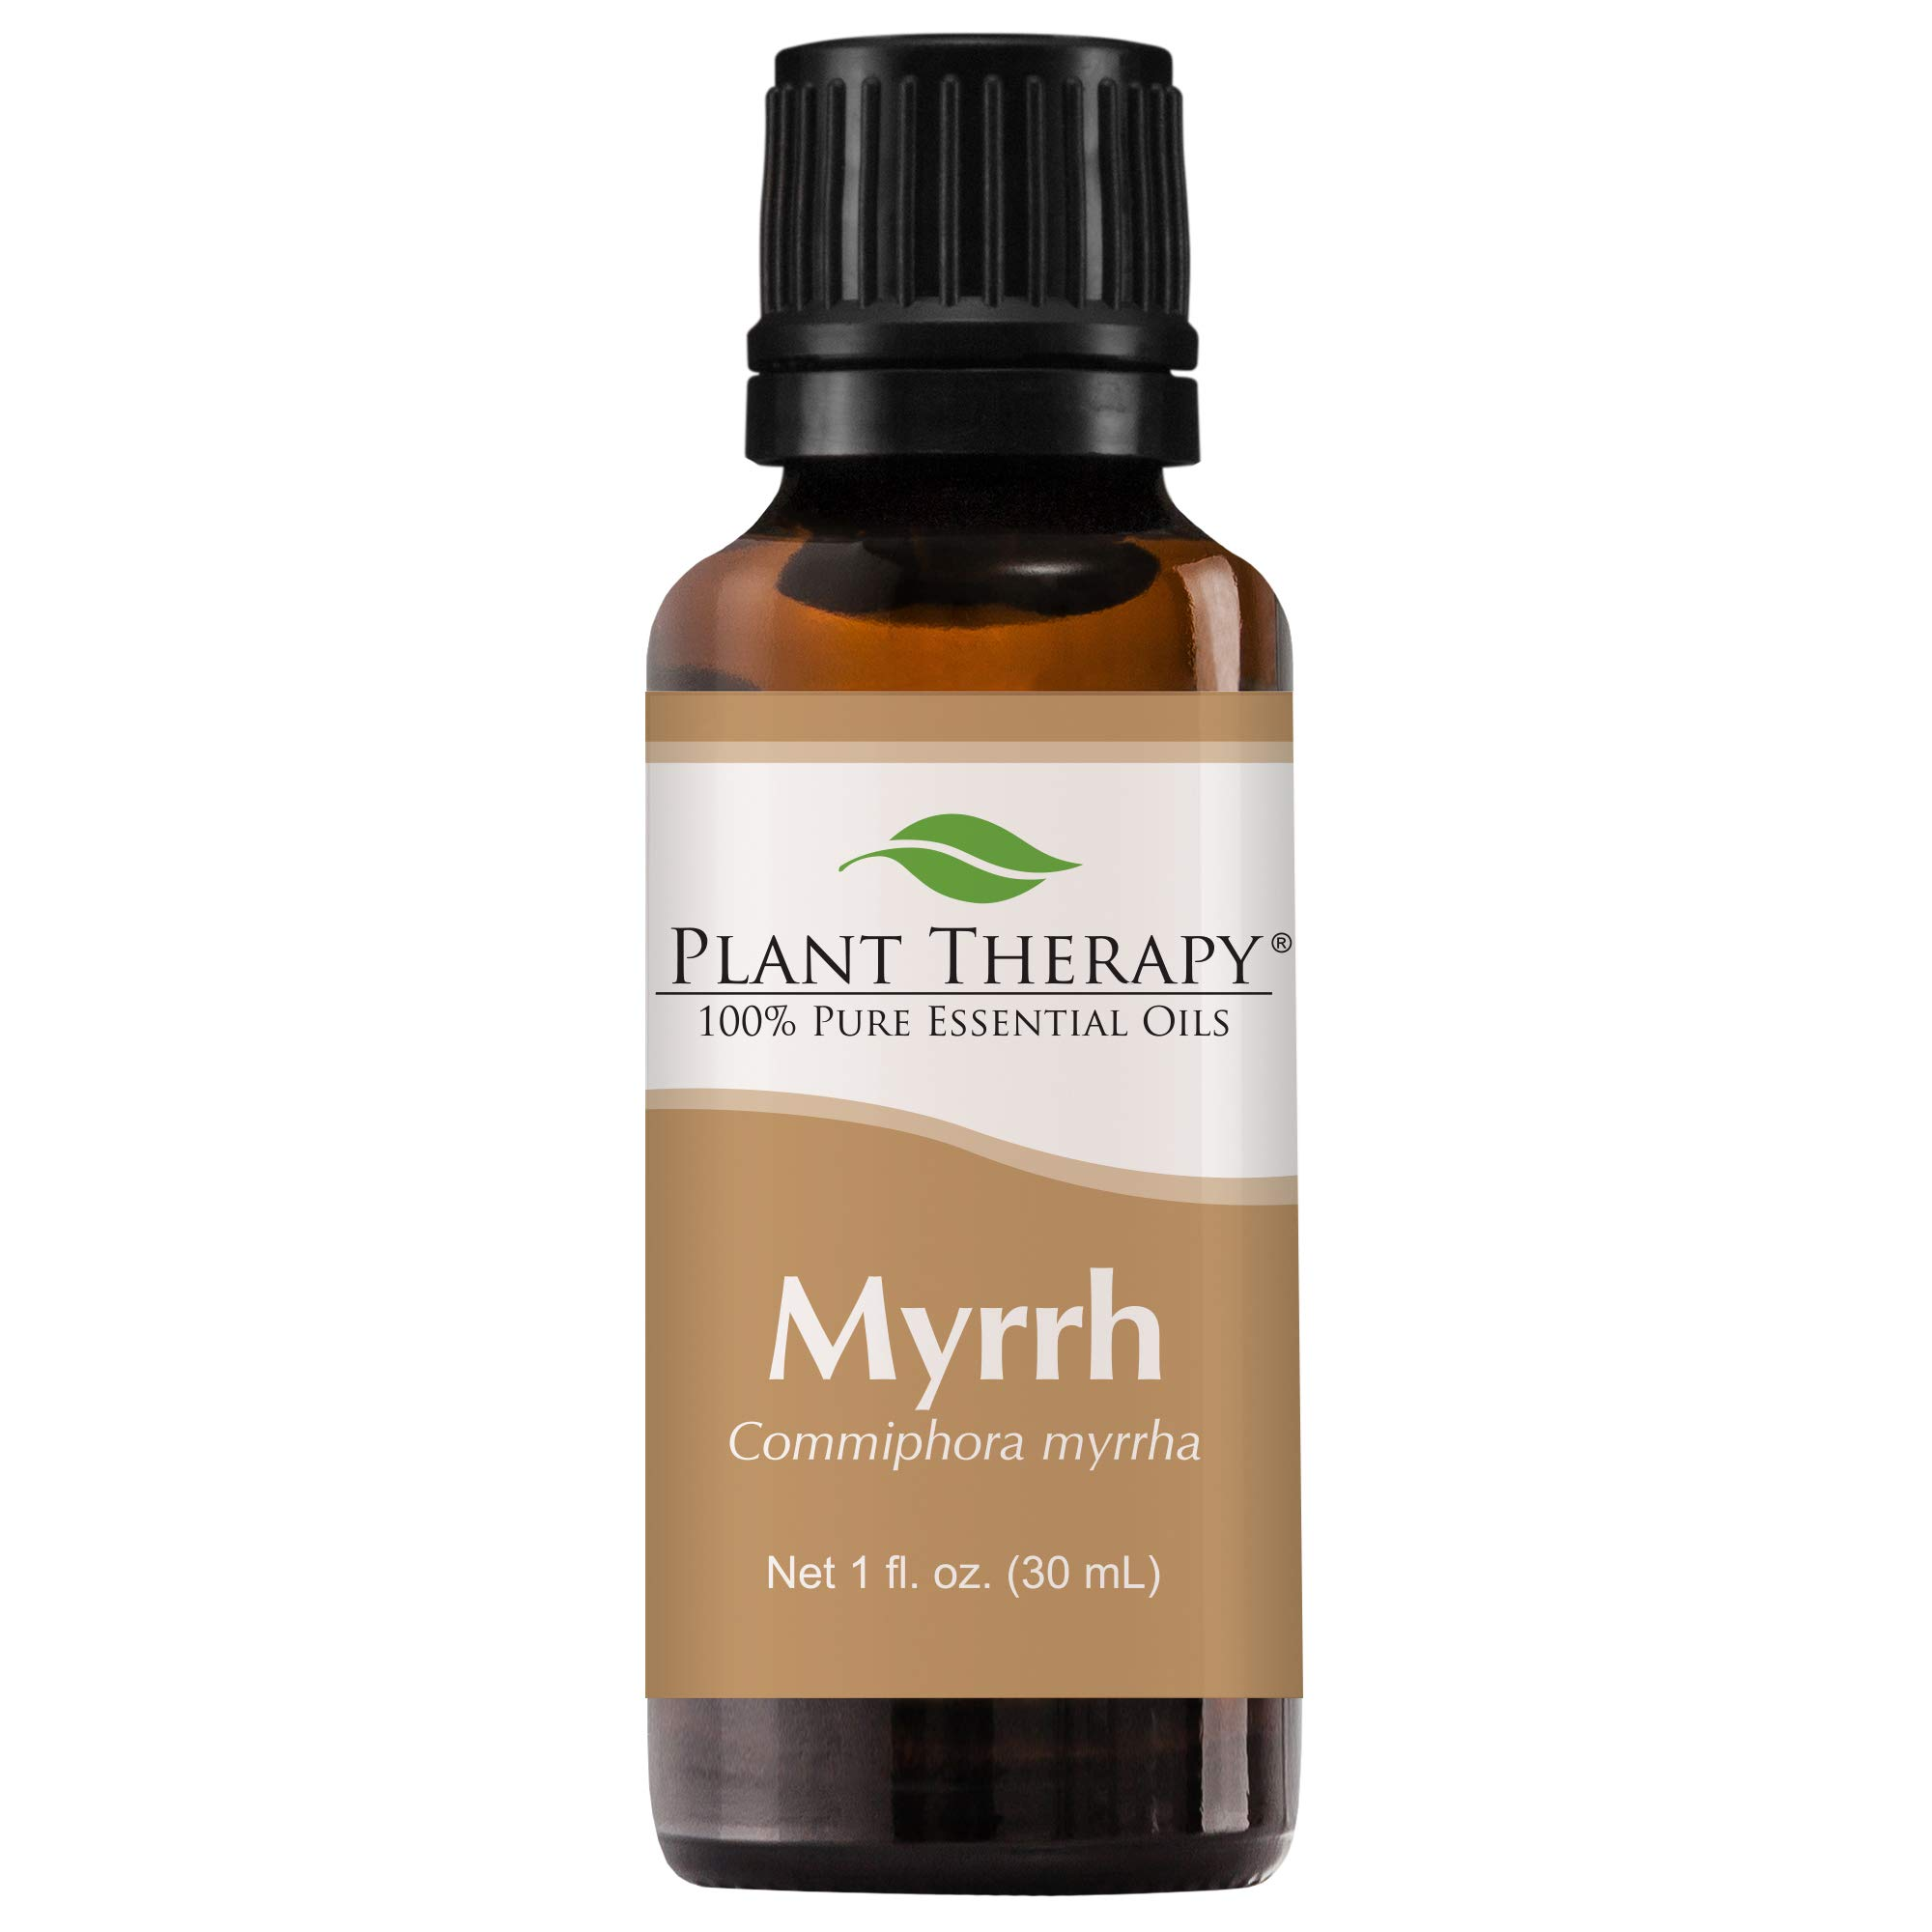 Plant Therapy Myrrh Essential Oil 100% Pure, Undiluted, Natural Aromatherapy, Therapeutic Grade 30 mL (1 oz)